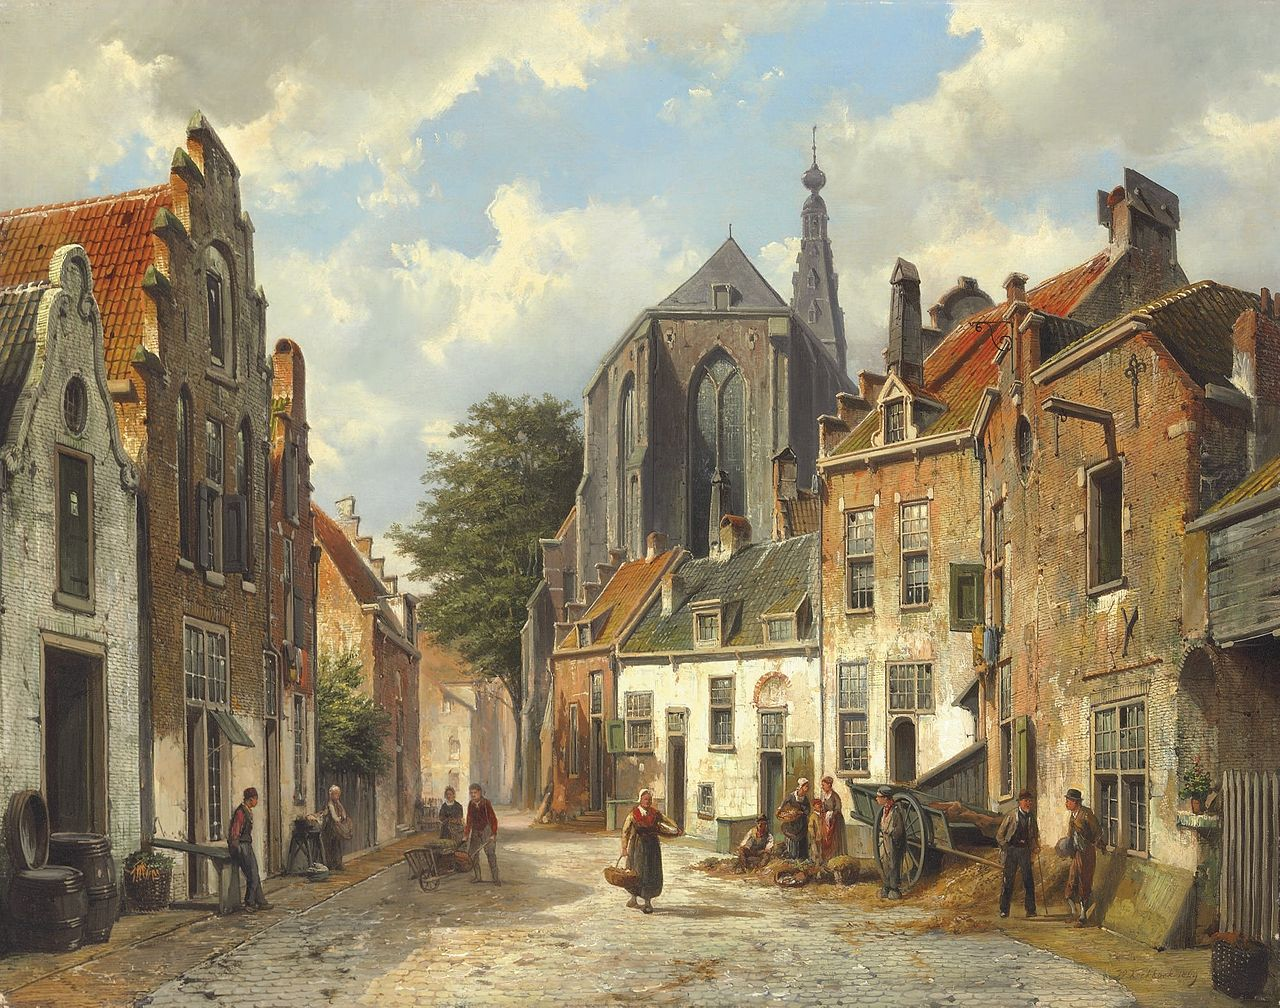 Willem Koekkoek - Townspeople on a sunny Dutch street.jpg